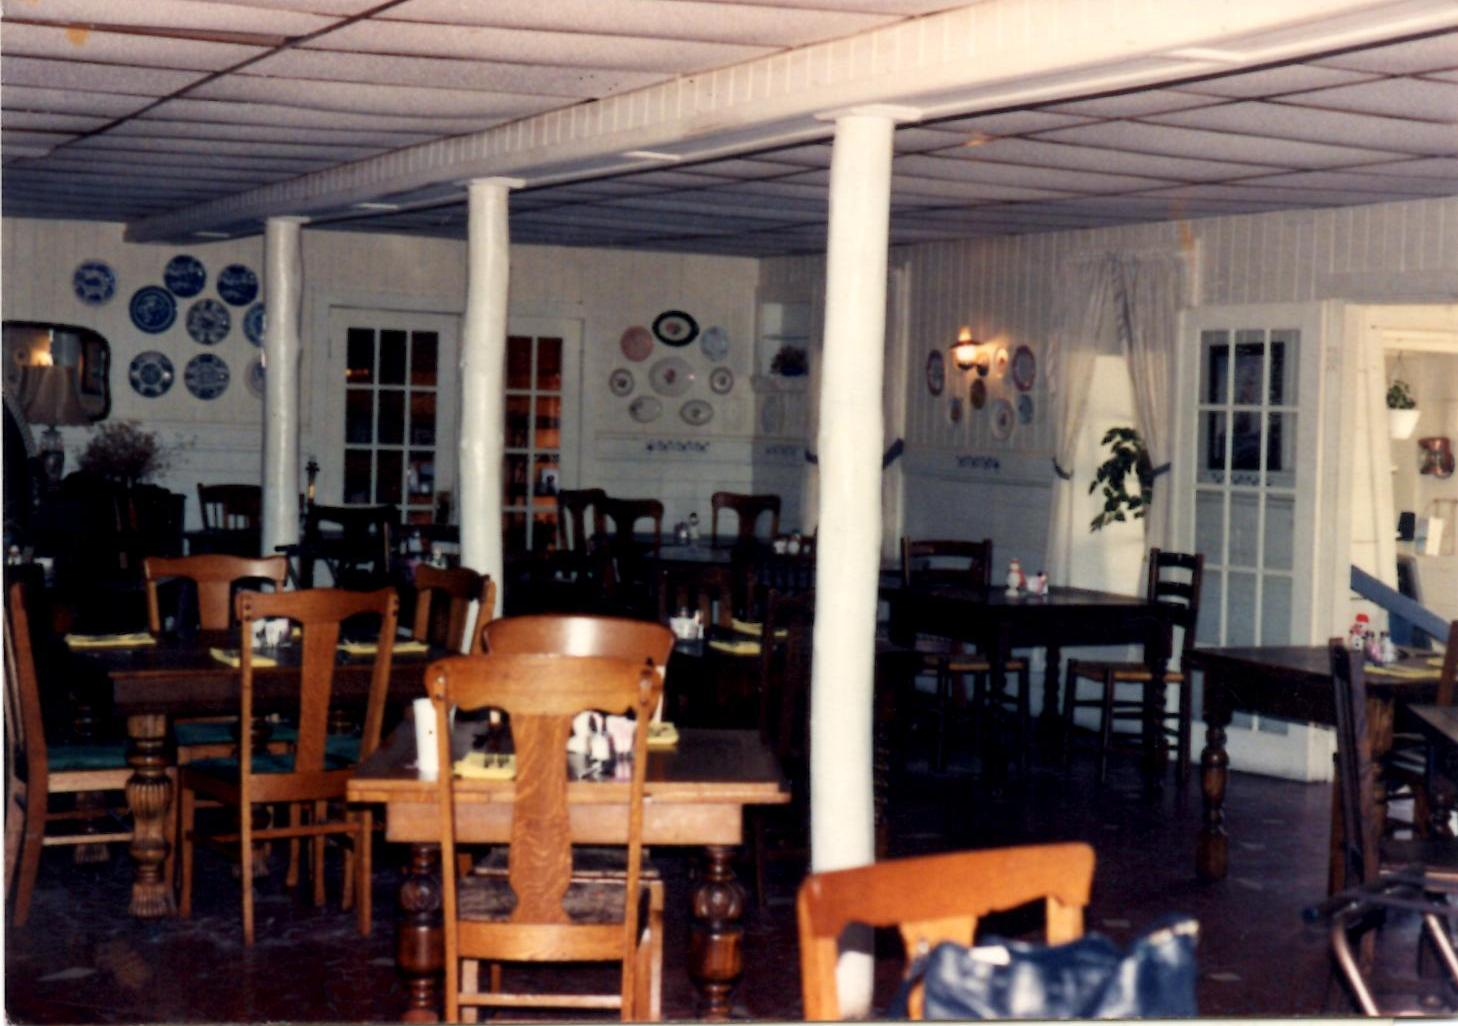 Below Is A Photo Of The Dining Room Por Island Restaurant From 1980s